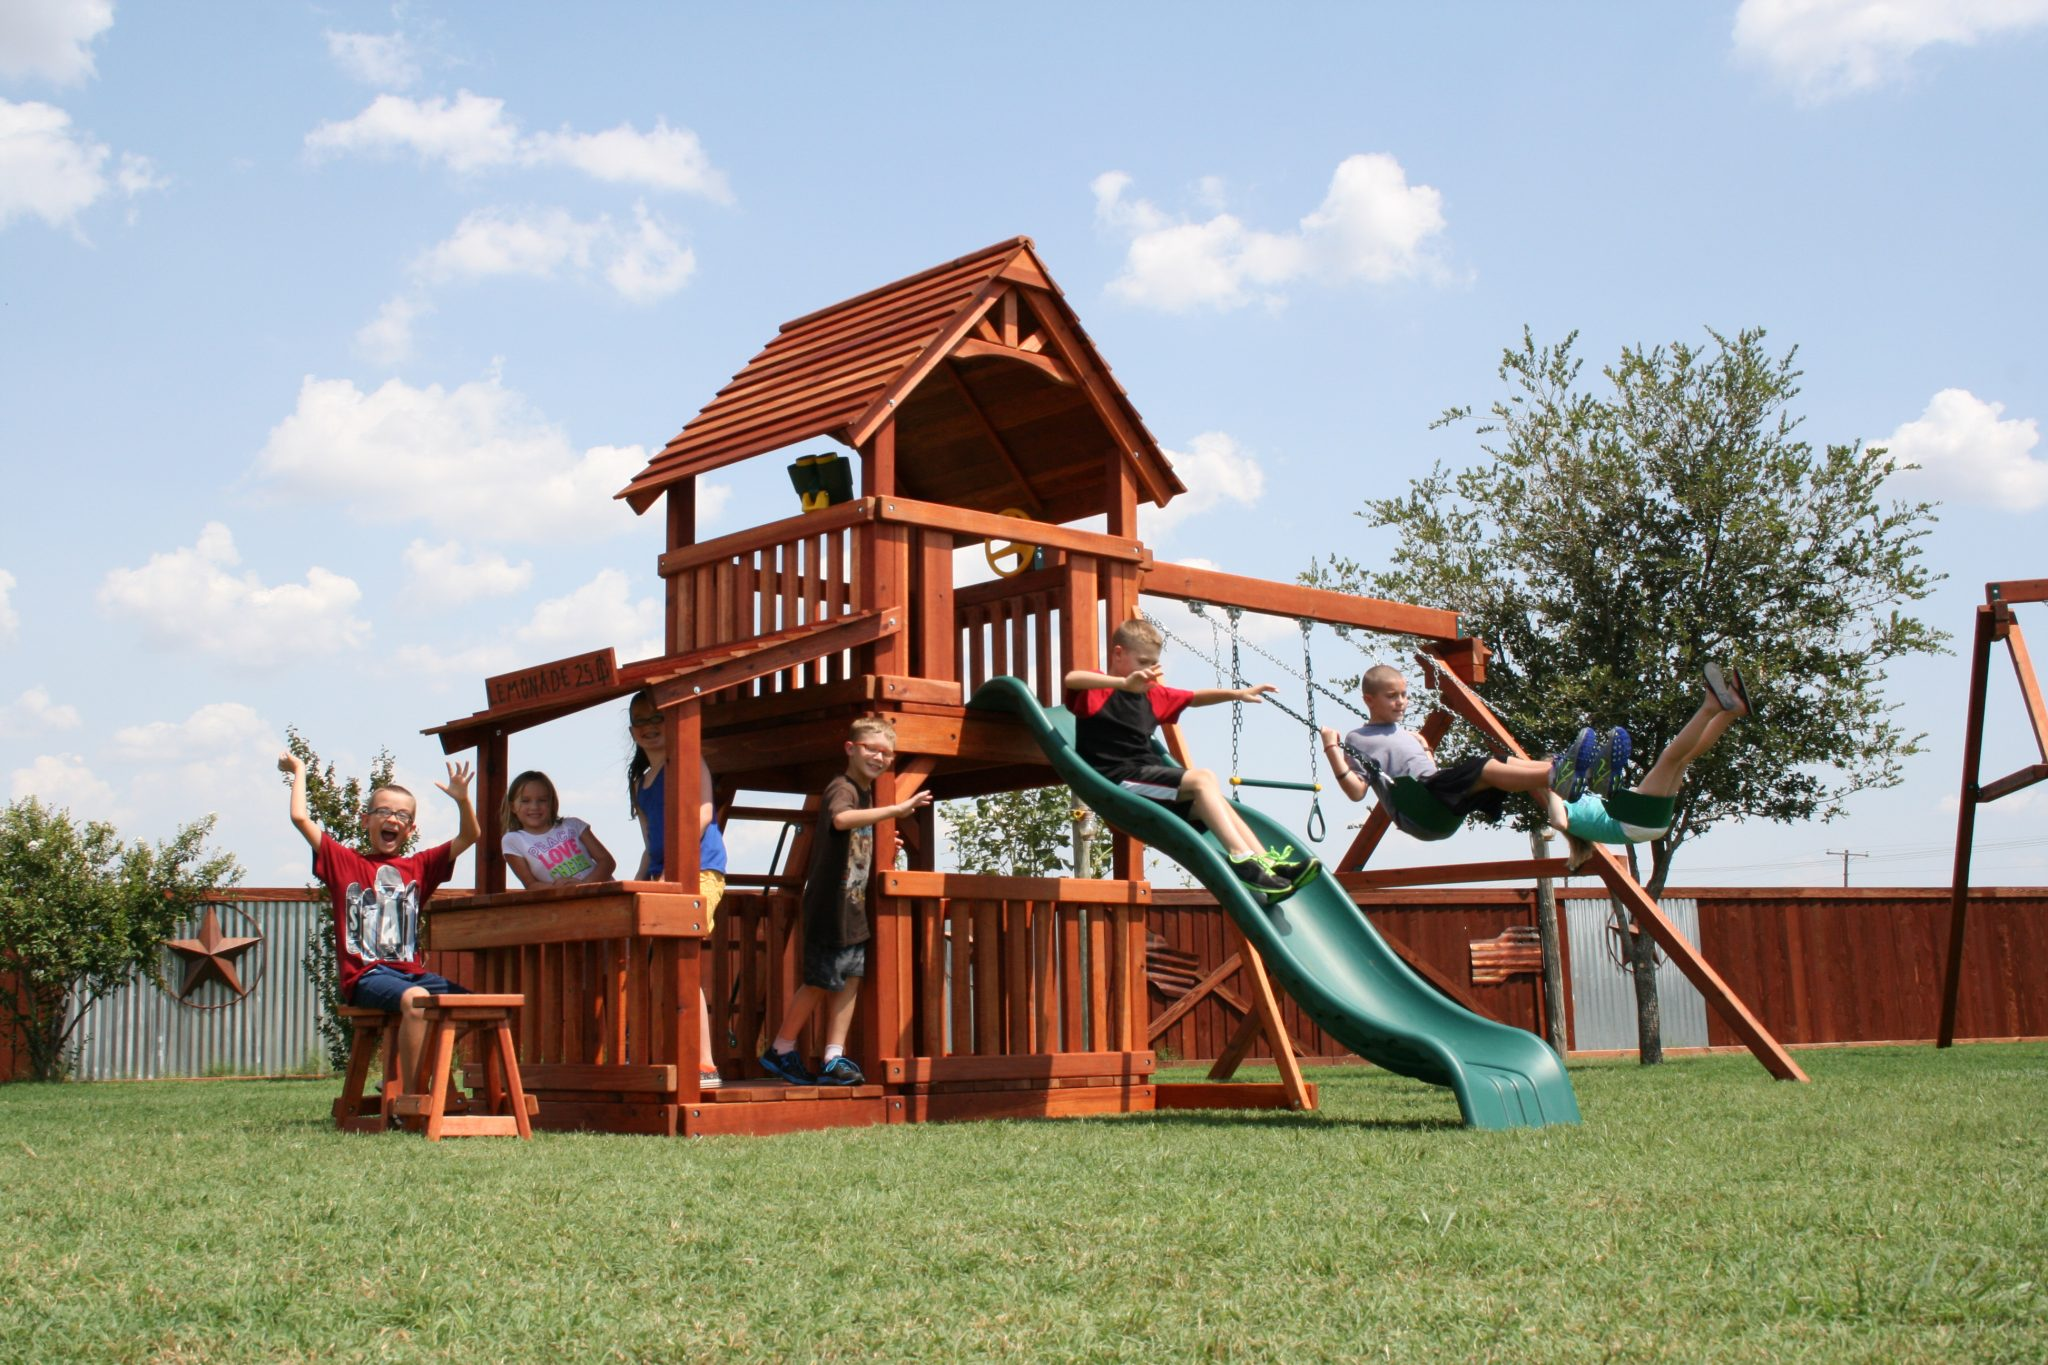 what are the benefits of installing a backyard playground